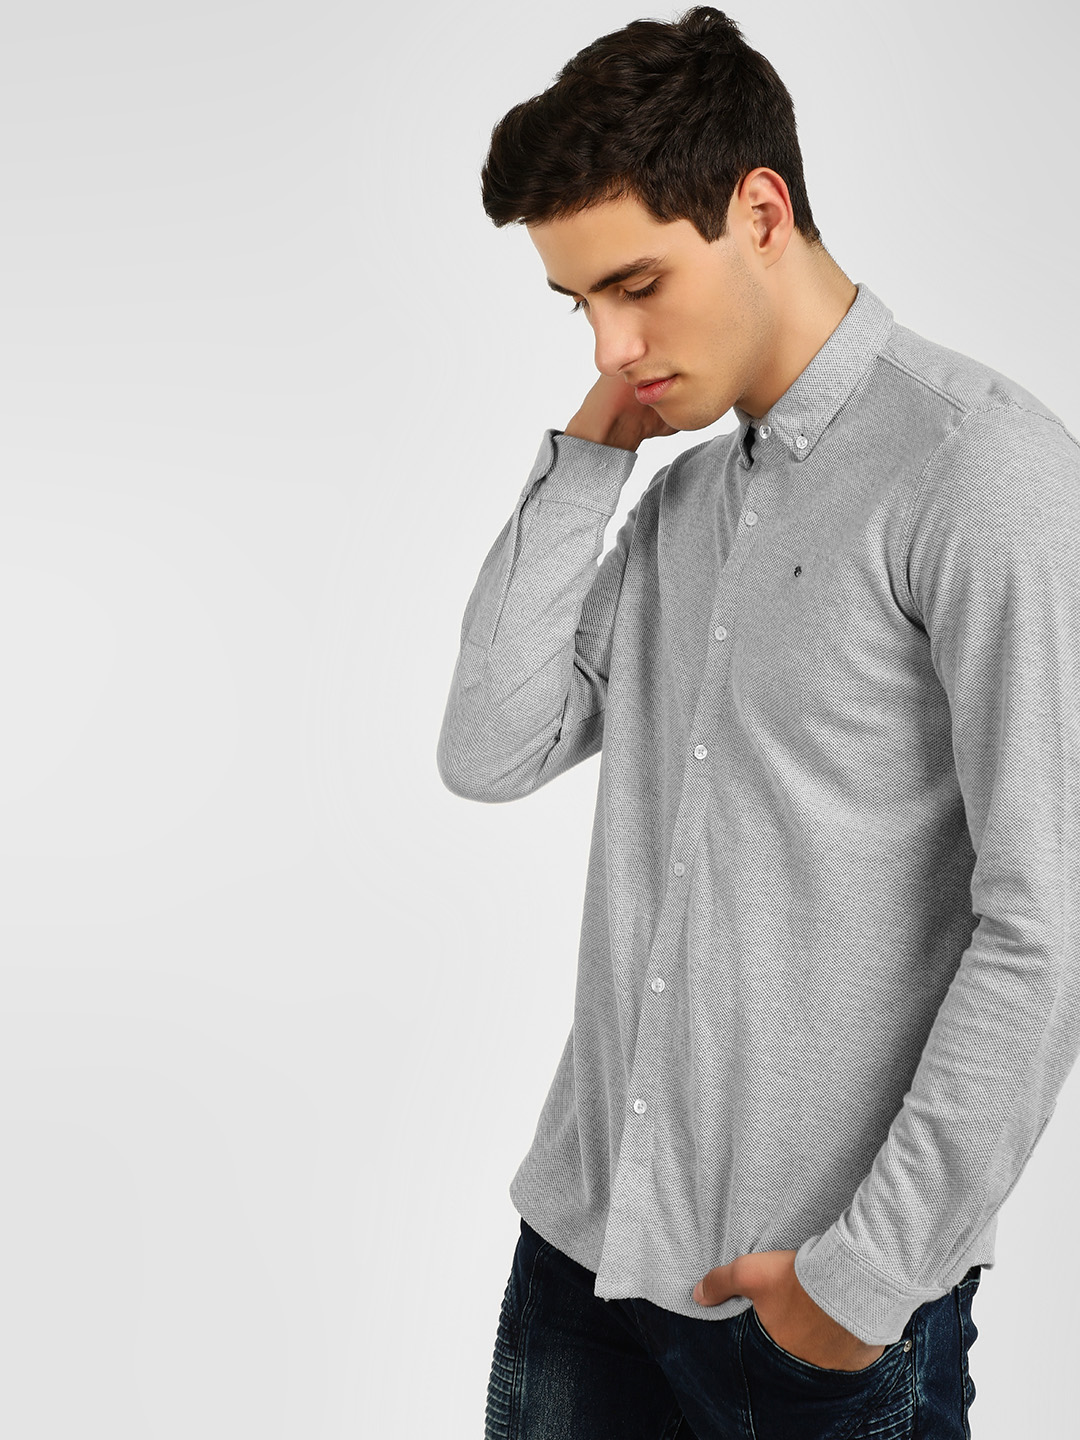 Lee Cooper Grey Casual Knit Shirt 1